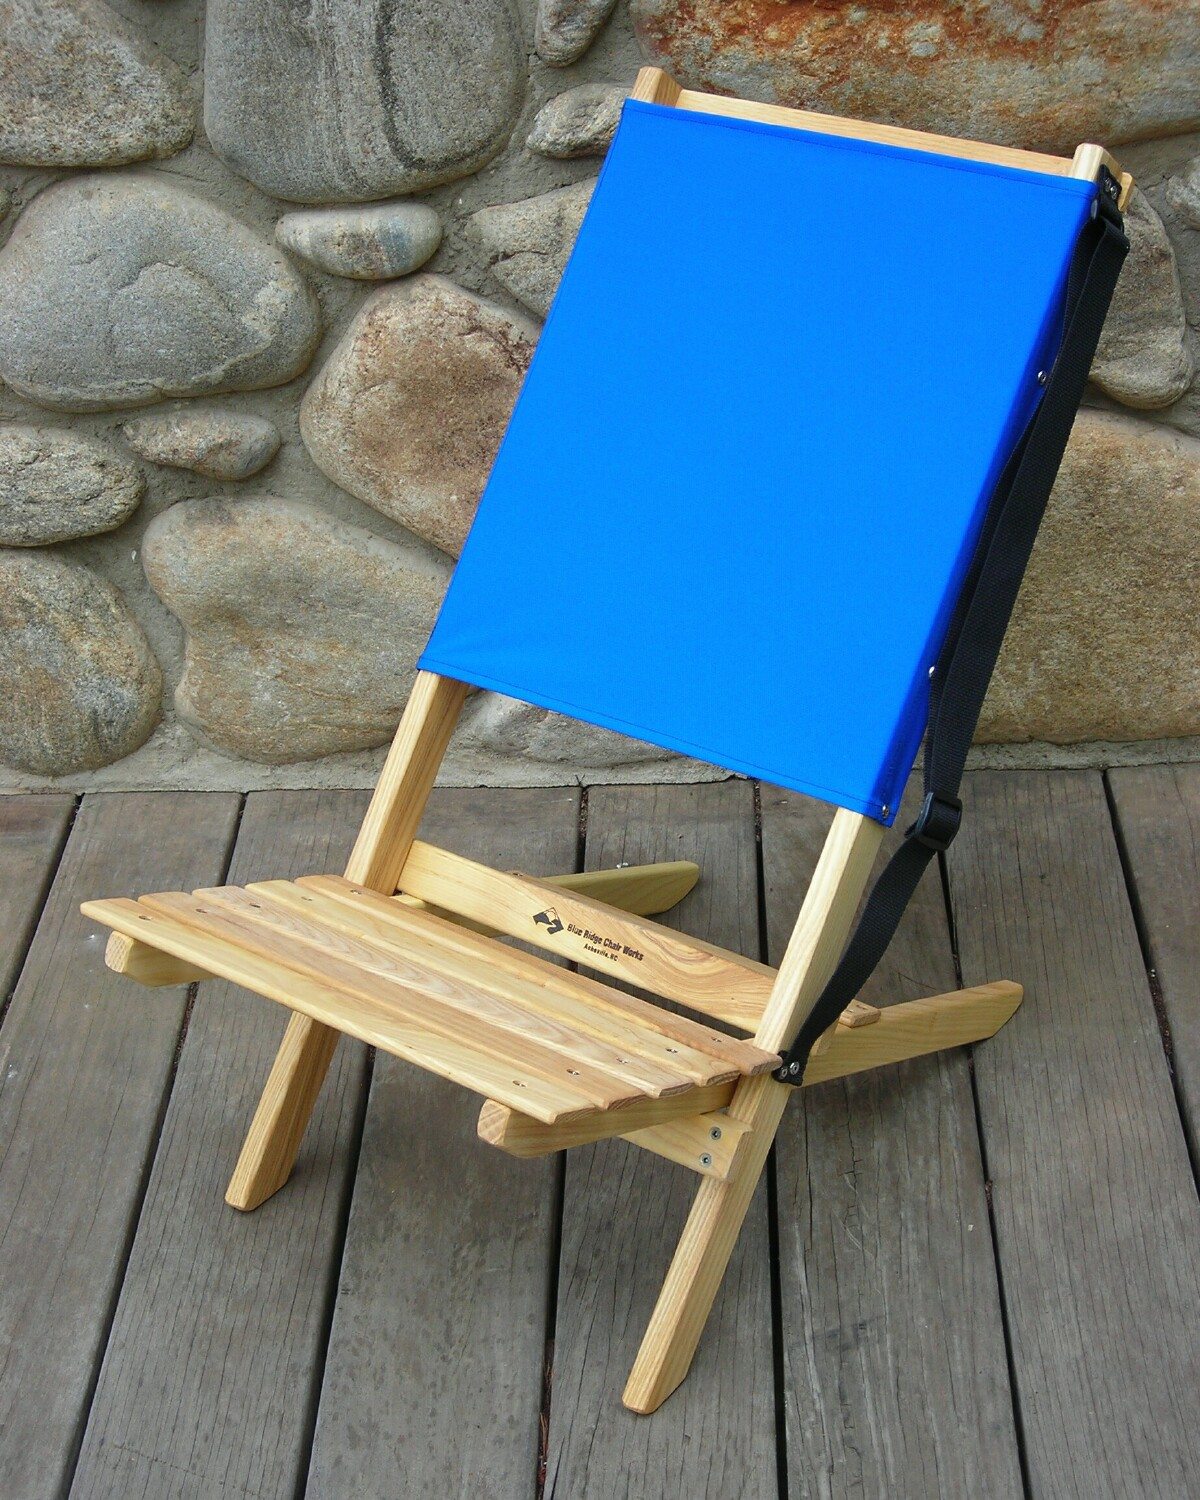 folding chair plans wood low profile outdoor and travel chairs for camping picnics